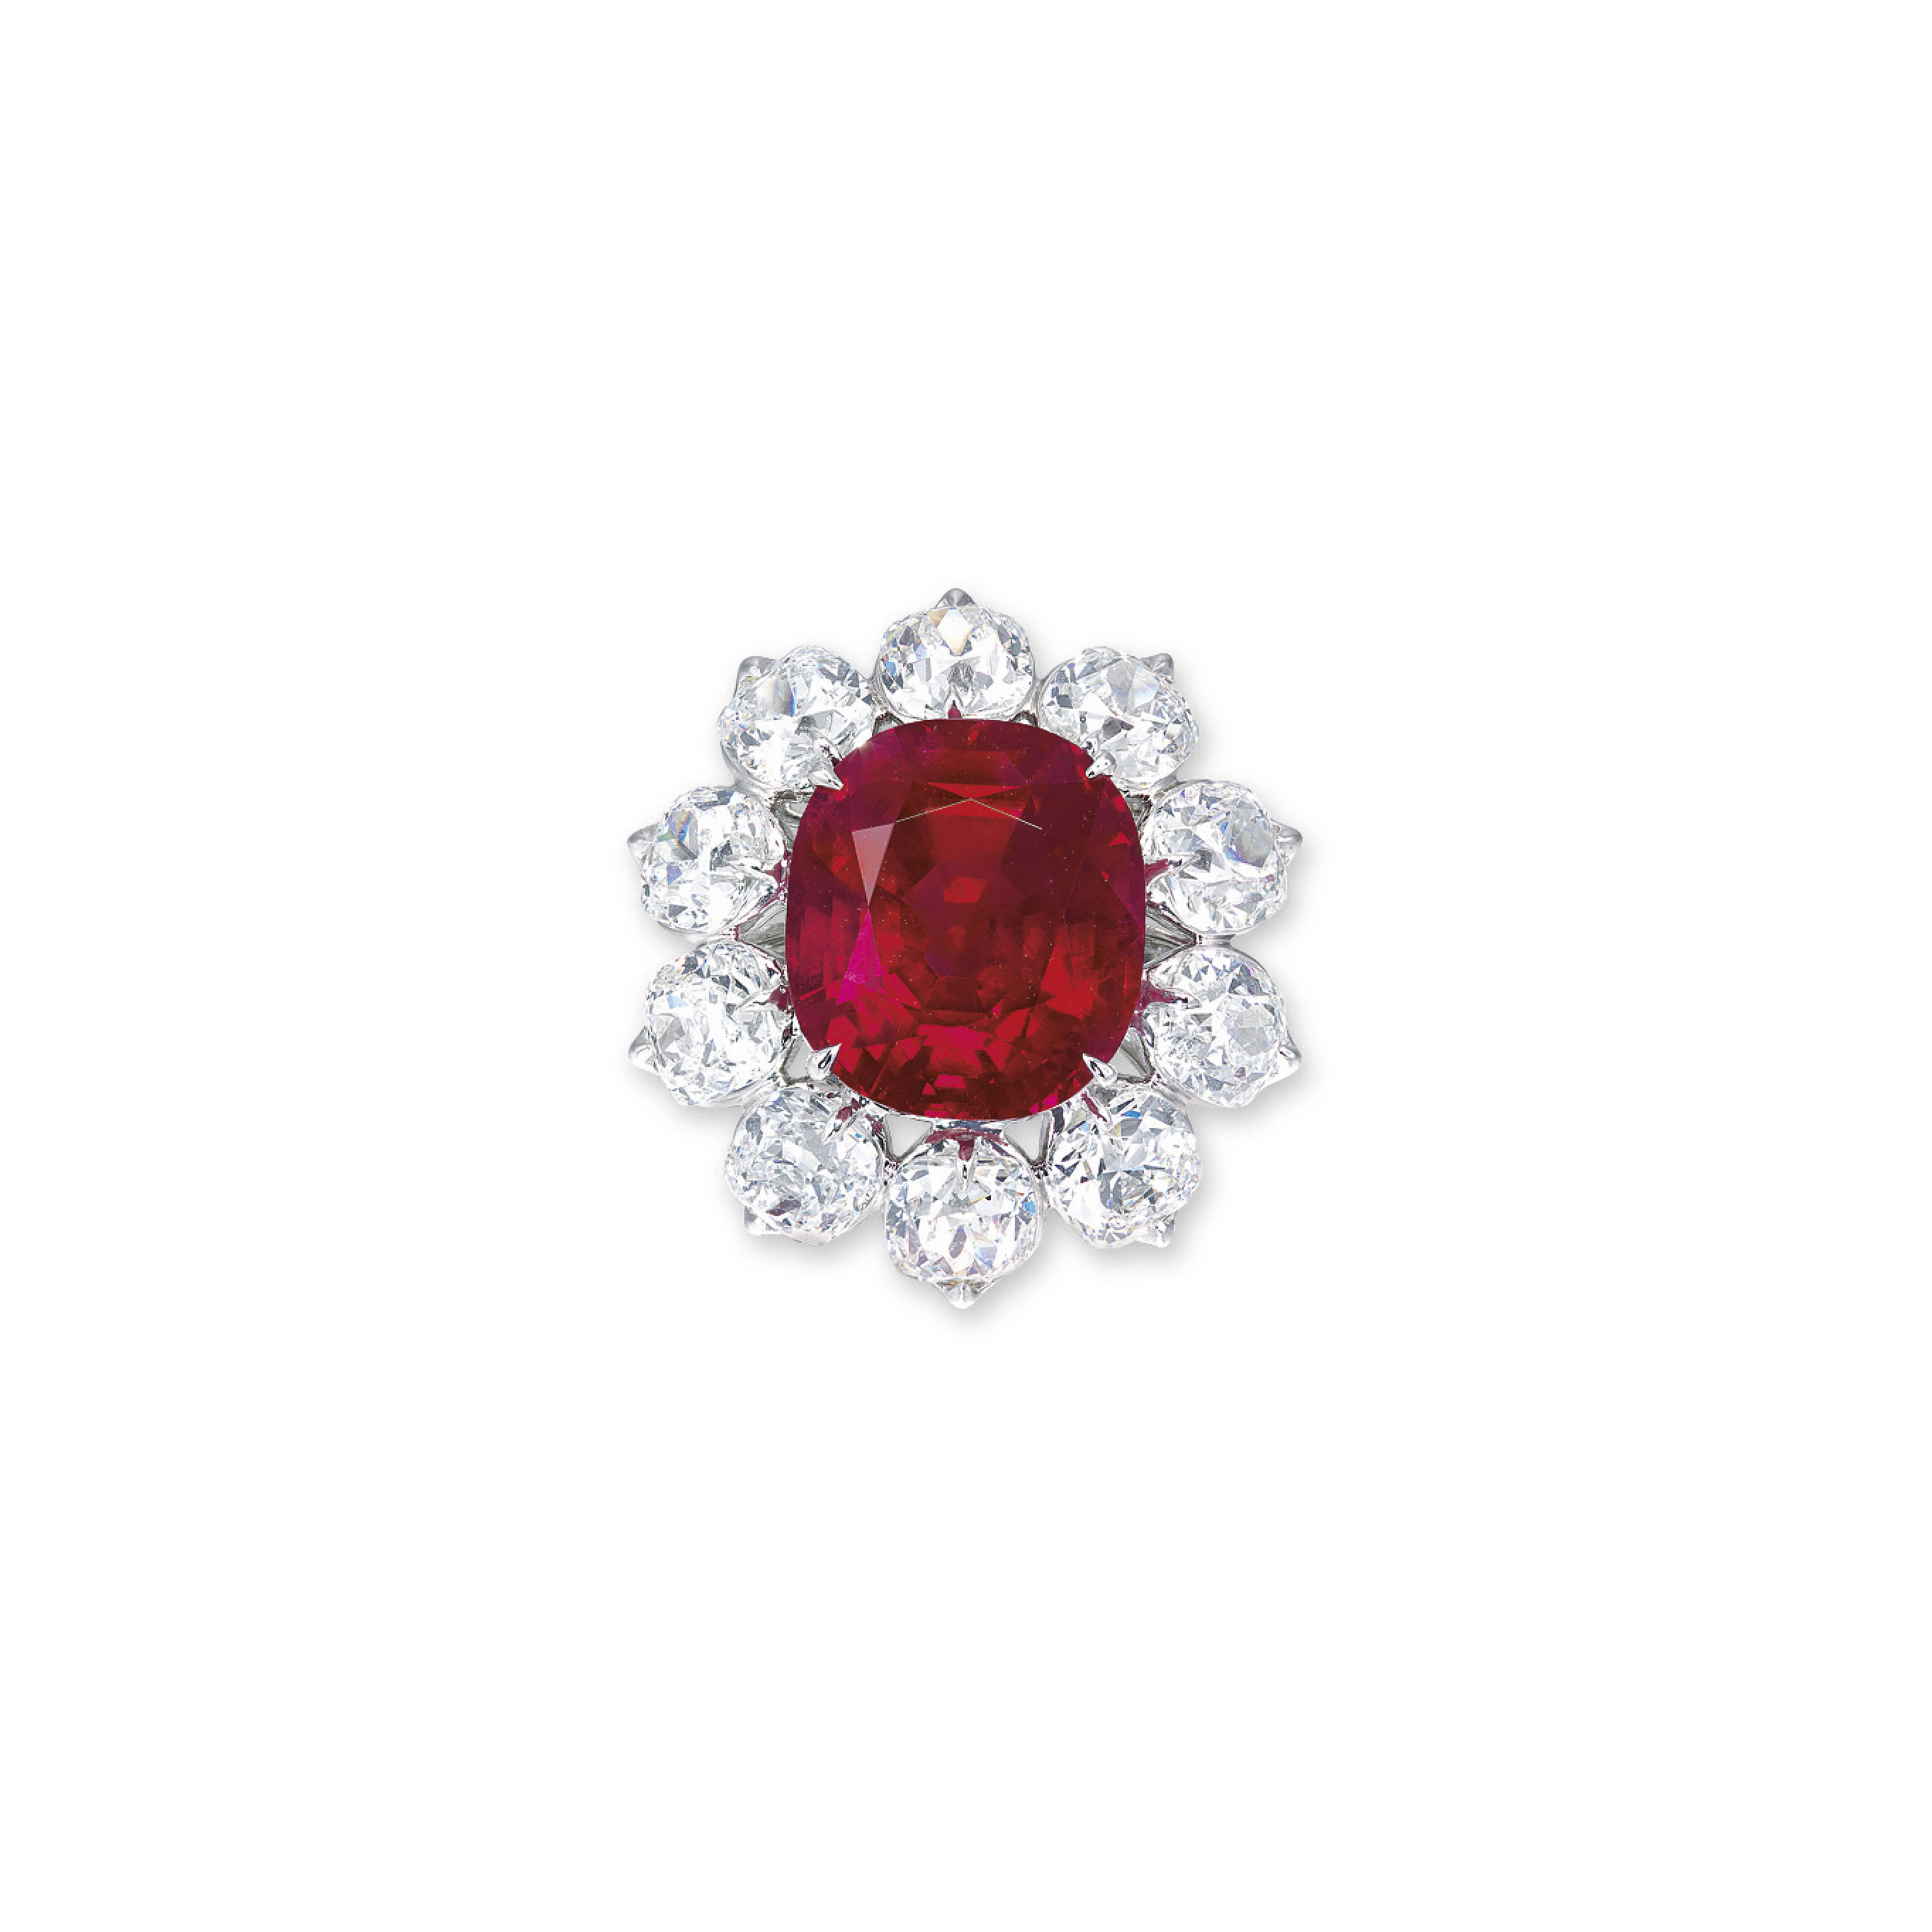 AN EXTRAORDINARY RUBY AND DIAMOND RING